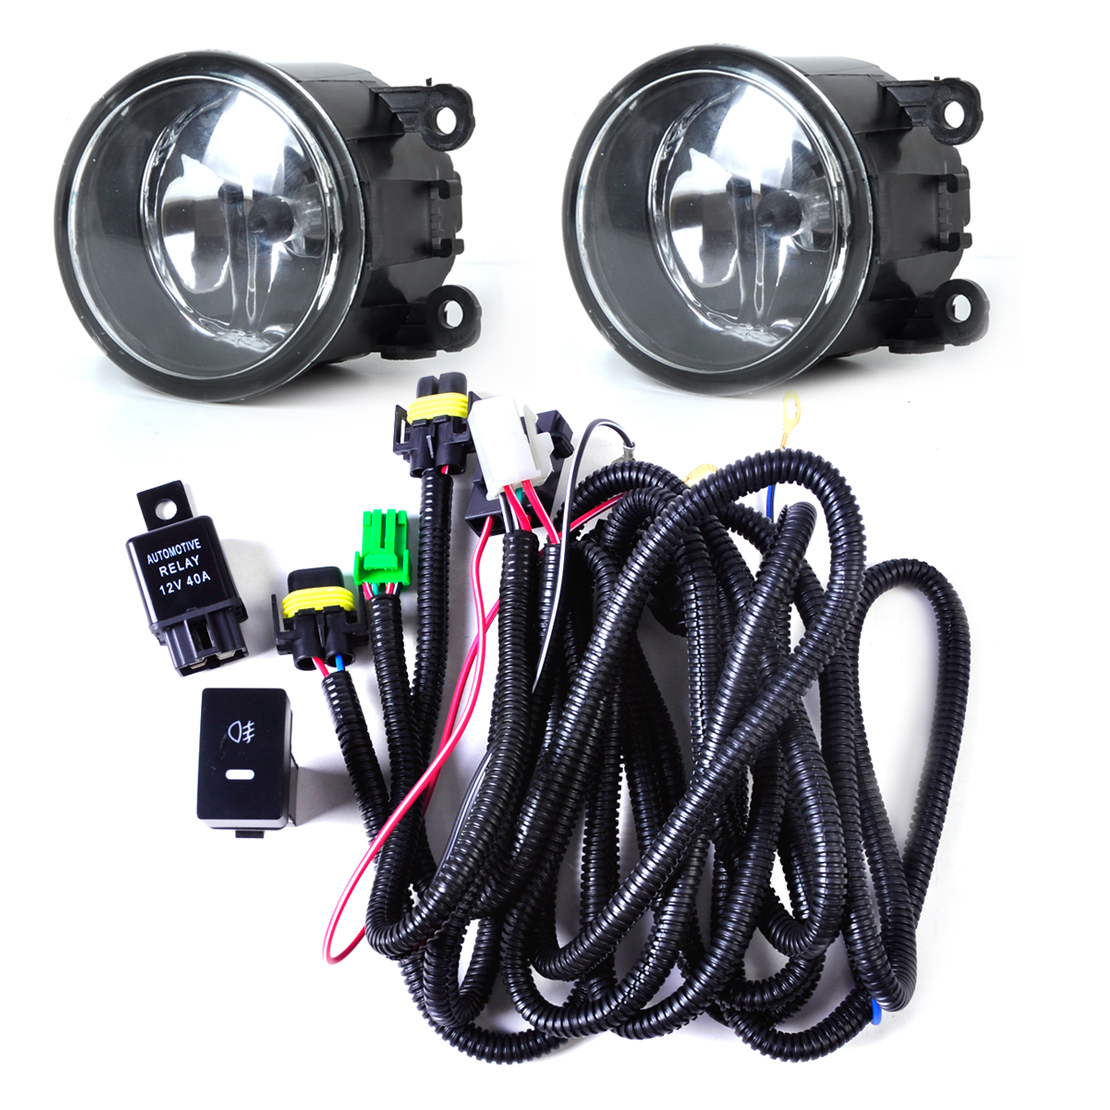 beler New Wiring Harness Sockets + Switch + 2 Fog Lights H11 Lamp 12V 55W  4F9Z 15200 AA Kit for Ford Mustang Lincoln Subaru-in Car Light Assembly  from ...